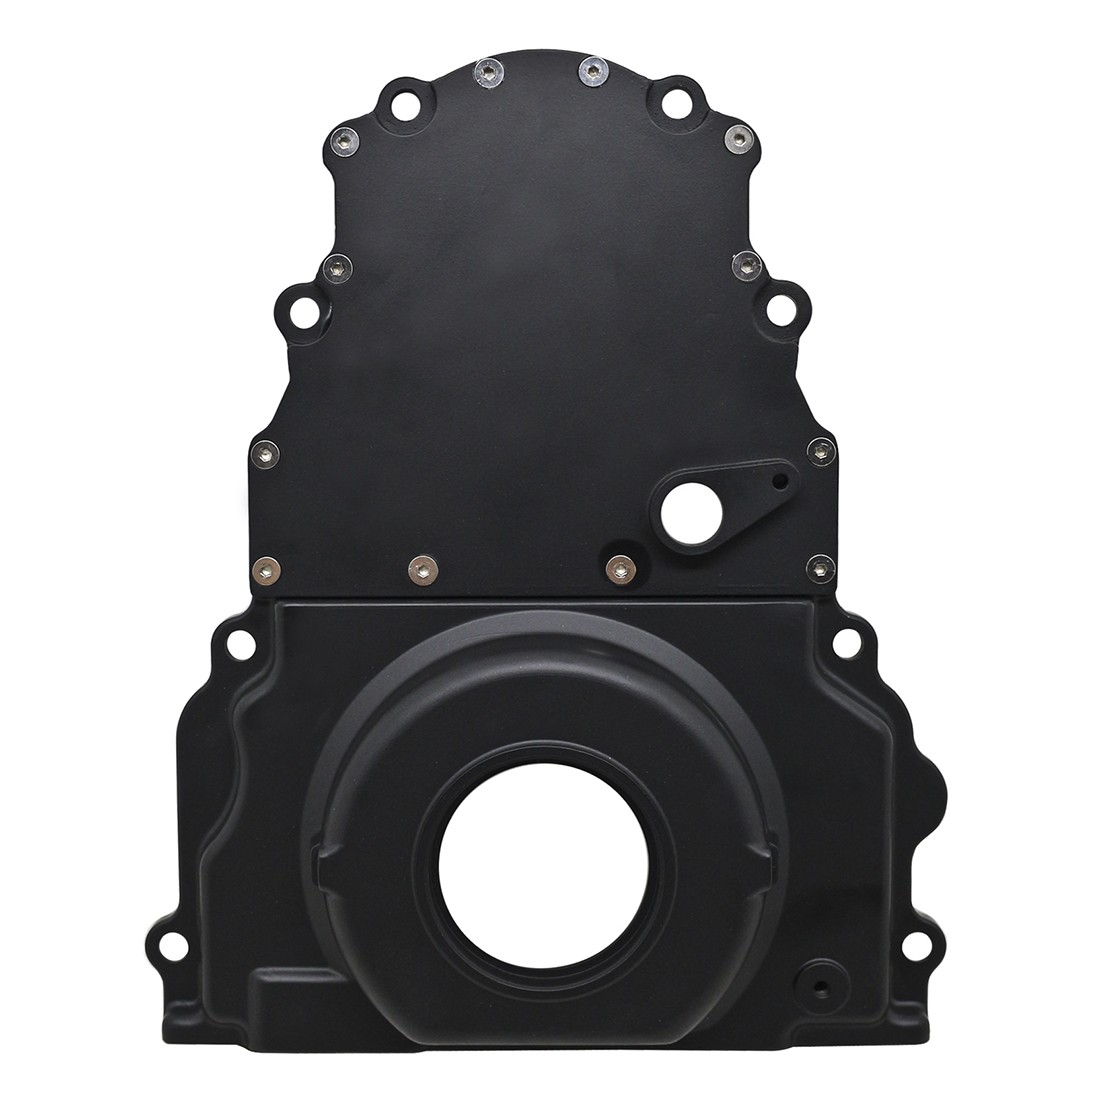 Chevy LS Two Piece Timing Chain Cover w Cam Sensor Hole - Black